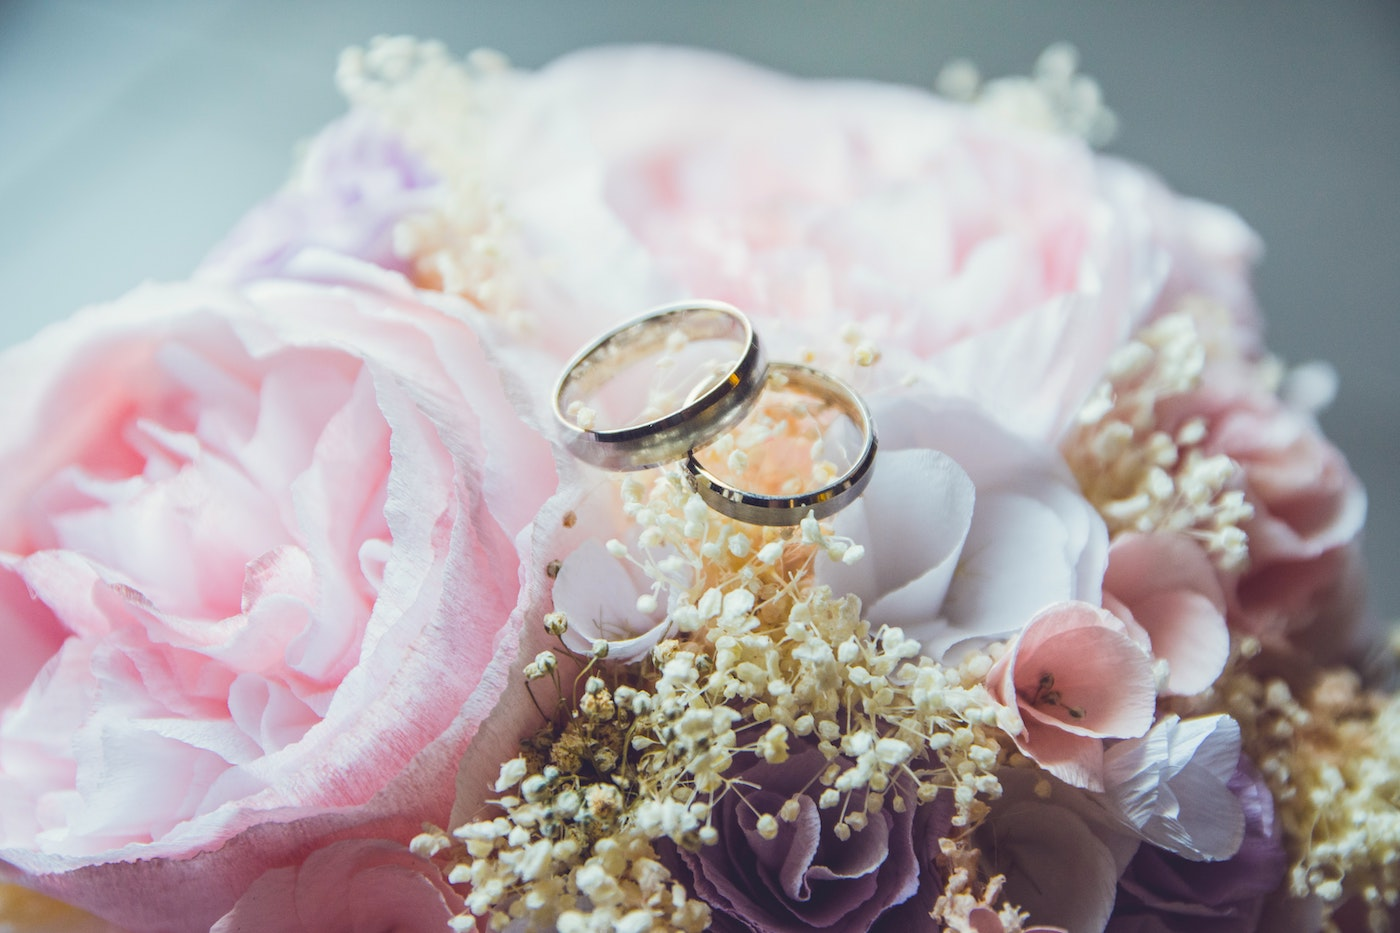 Two wedding rings on top of flowers